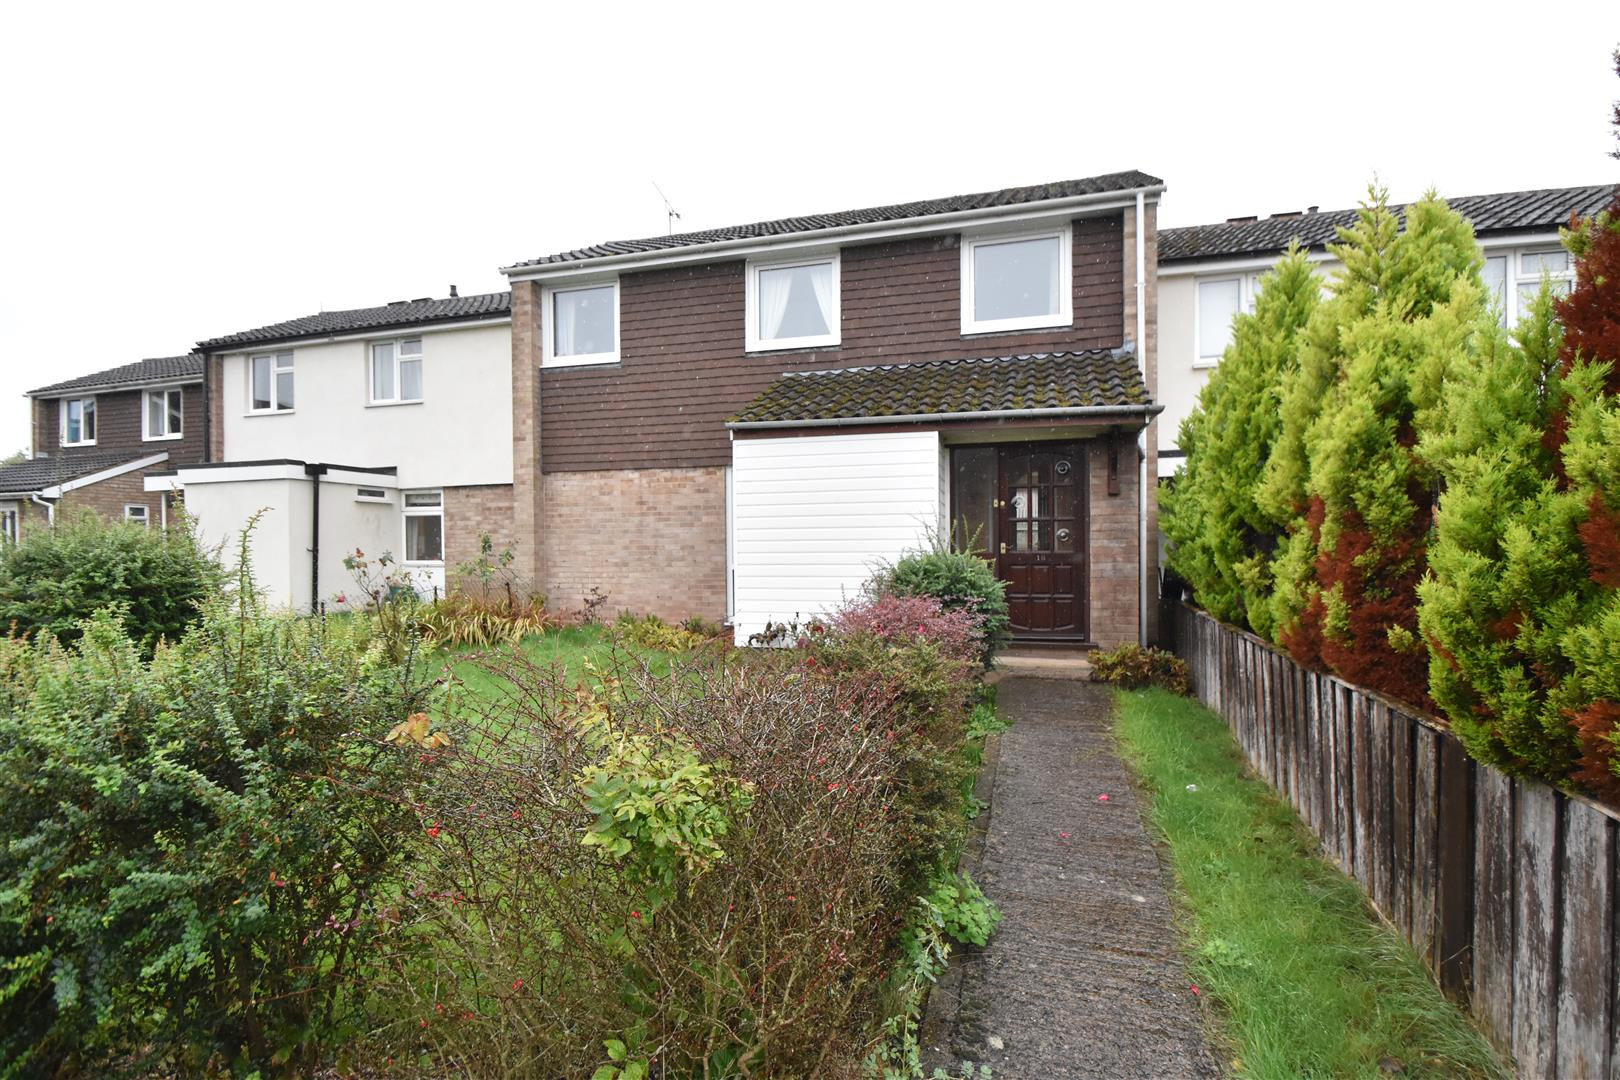 3 Bedrooms Terraced House for sale in Homestead, Droitwich Spa